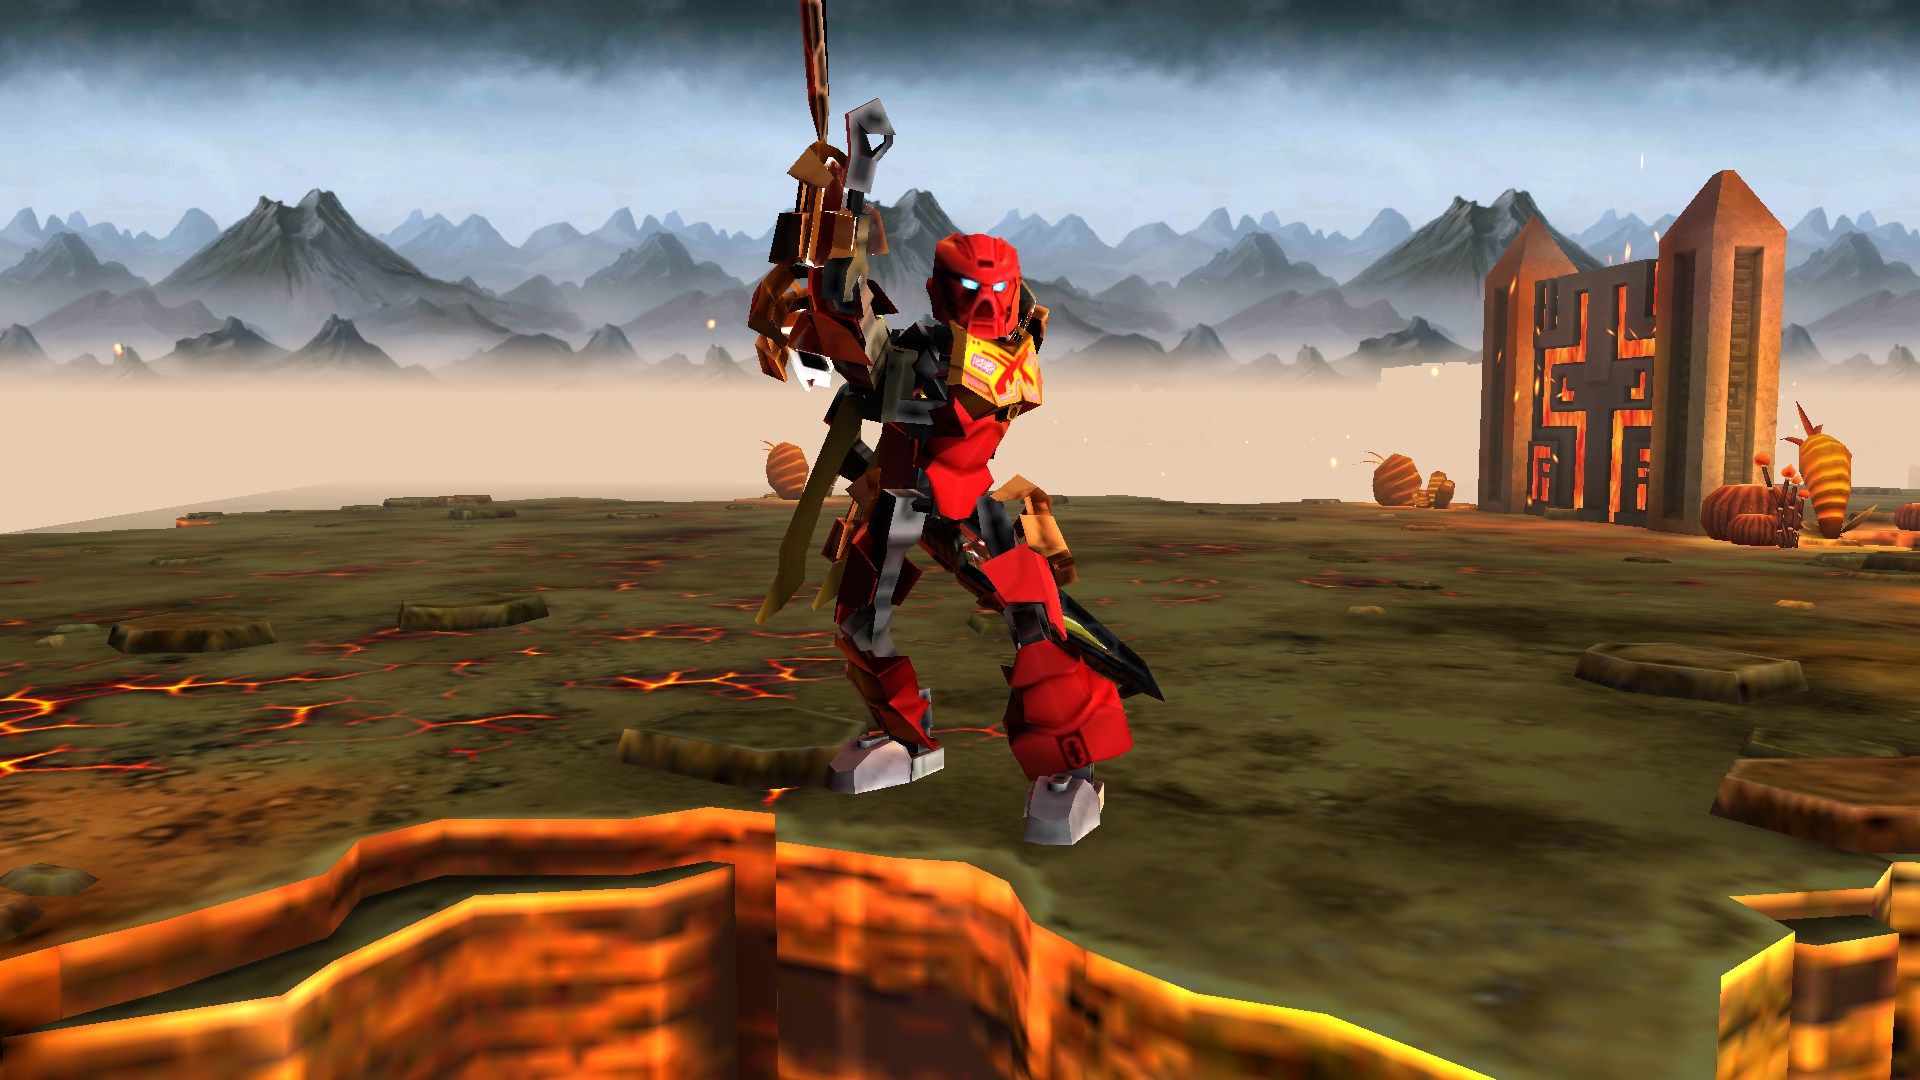 Lego Bionicle Games For Android 2018 Free Download Lego